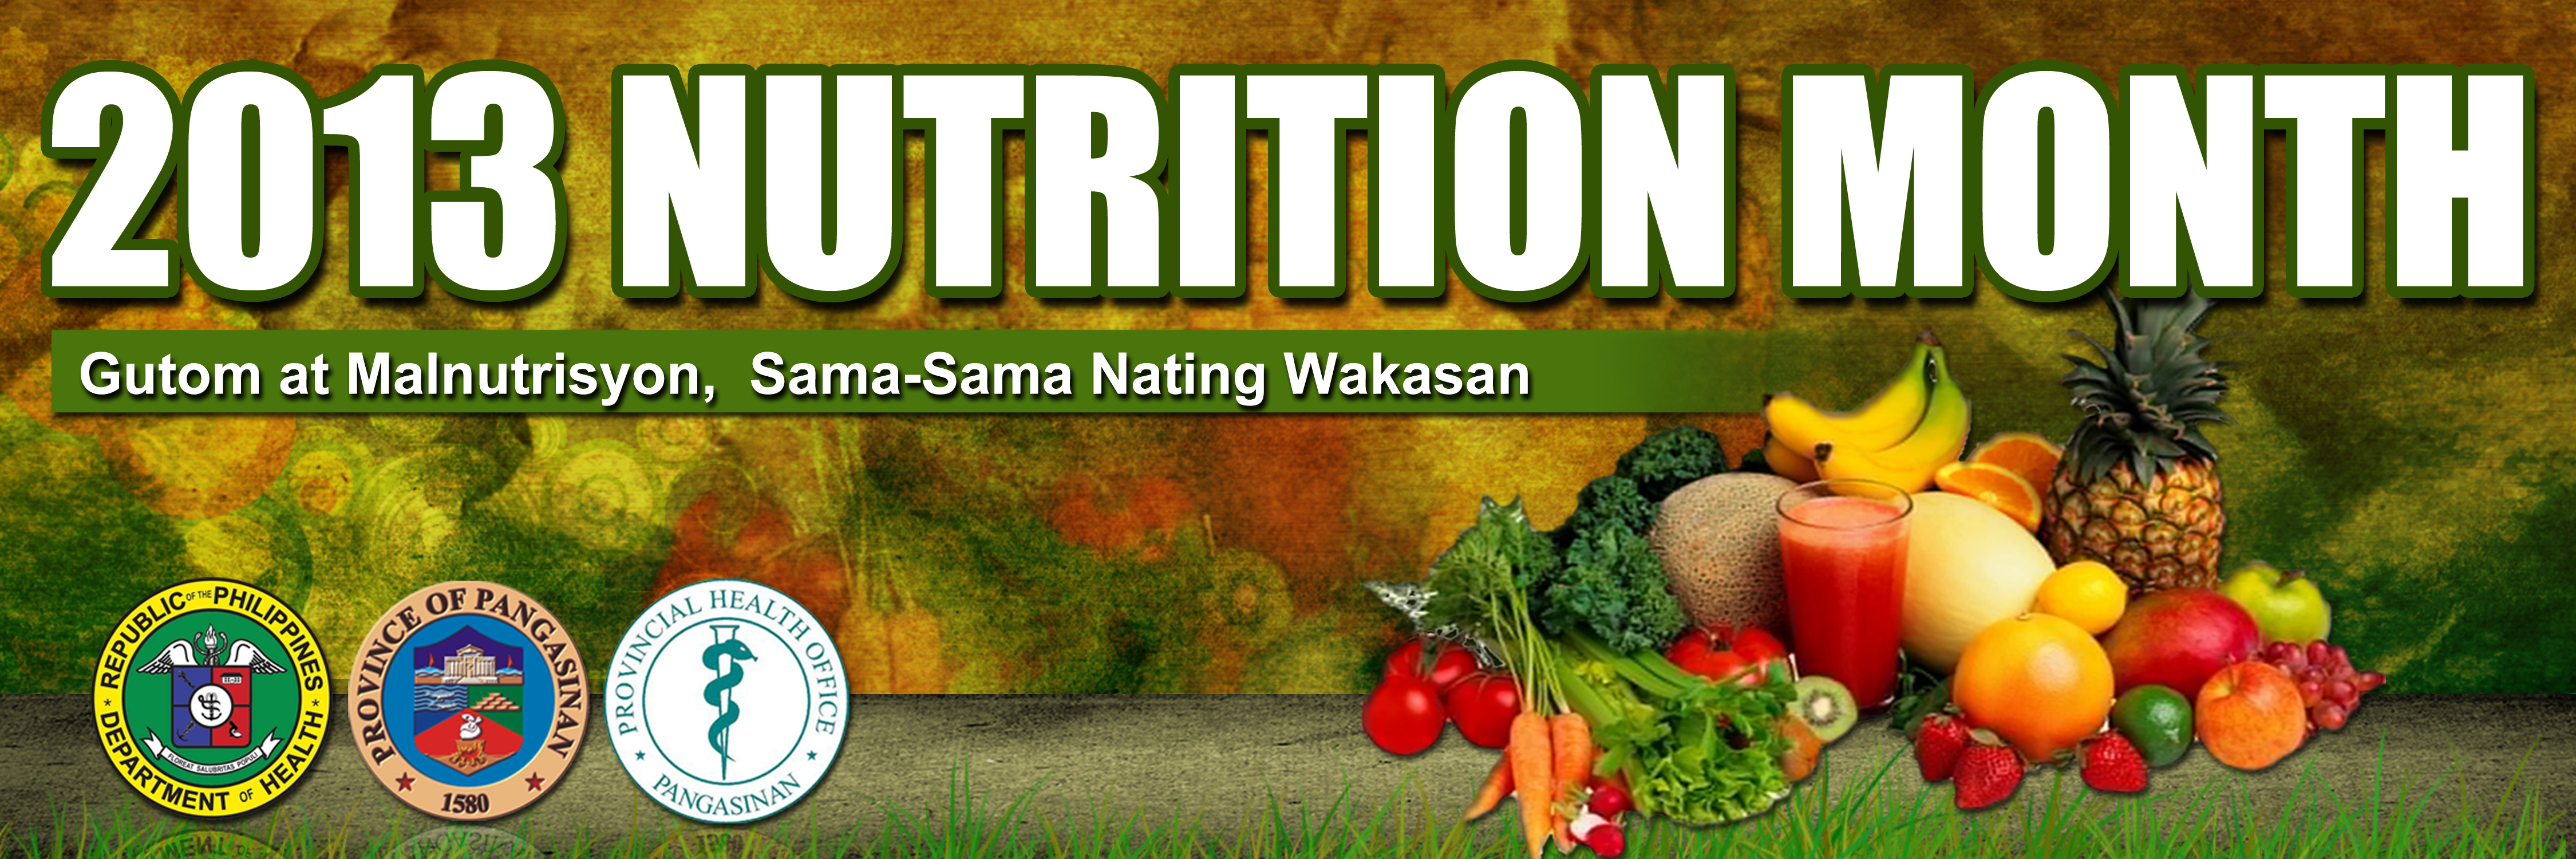 nutrition month essay